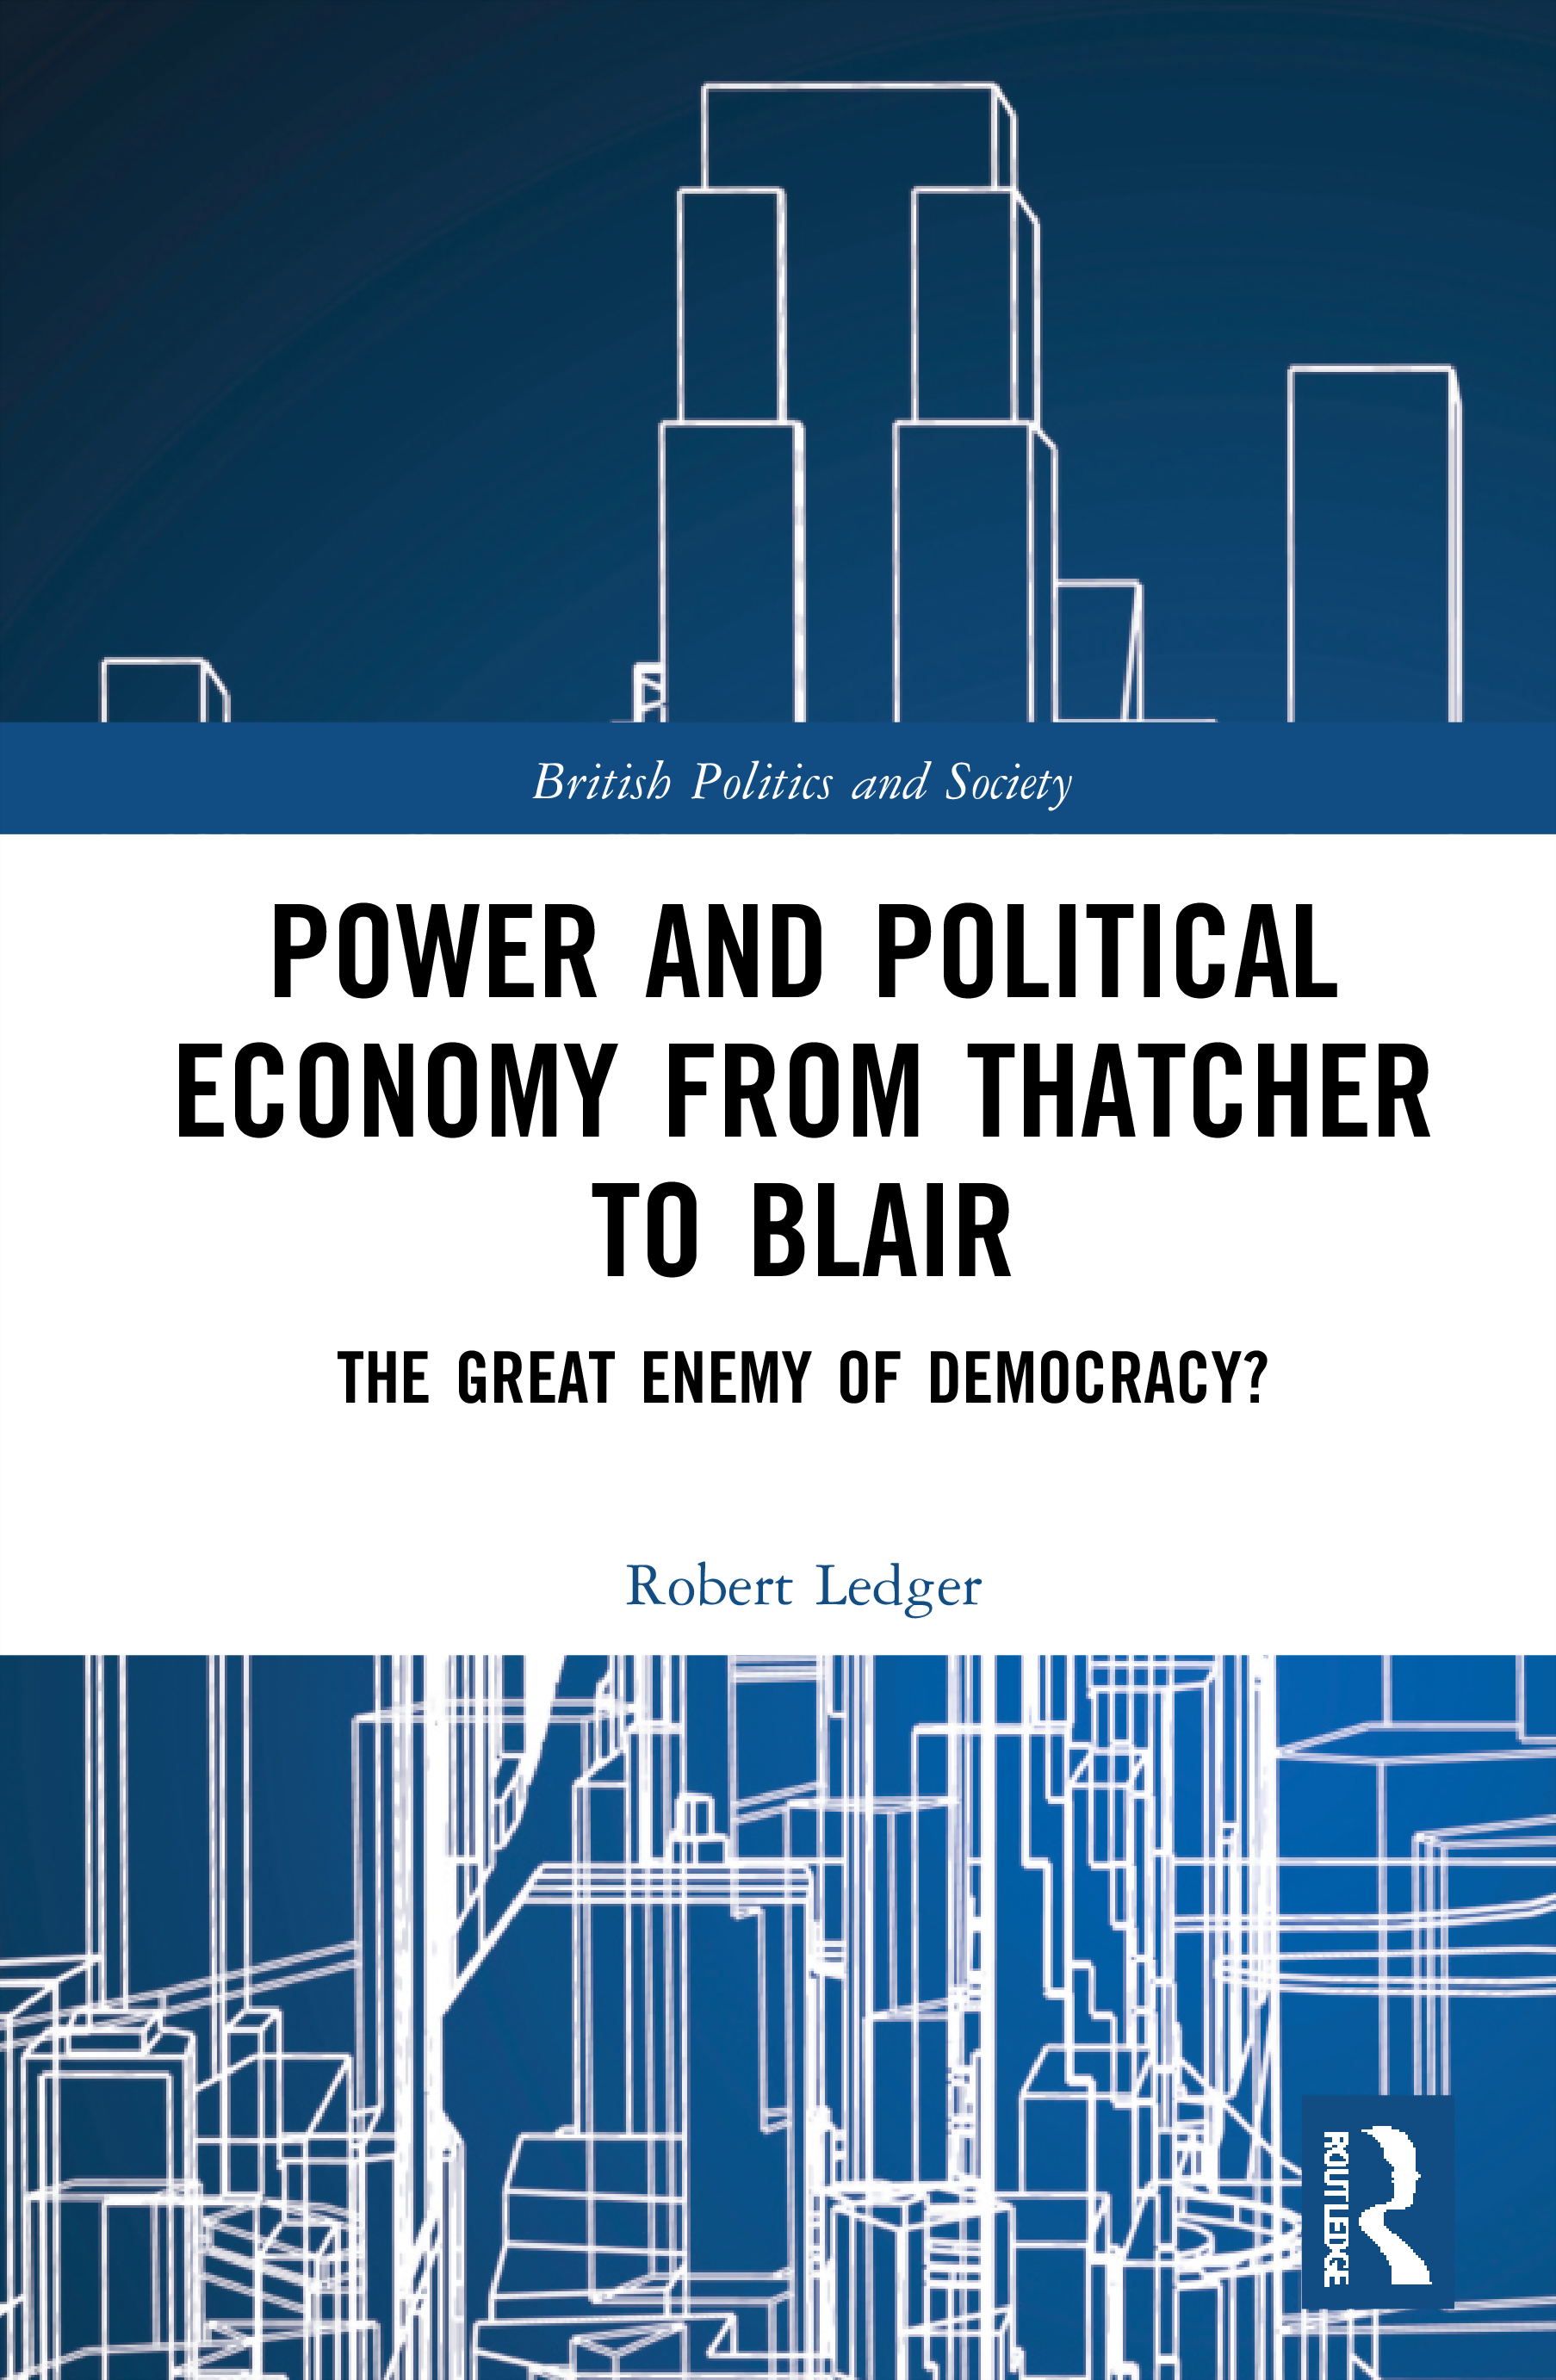 History and development of competition policy in Britain